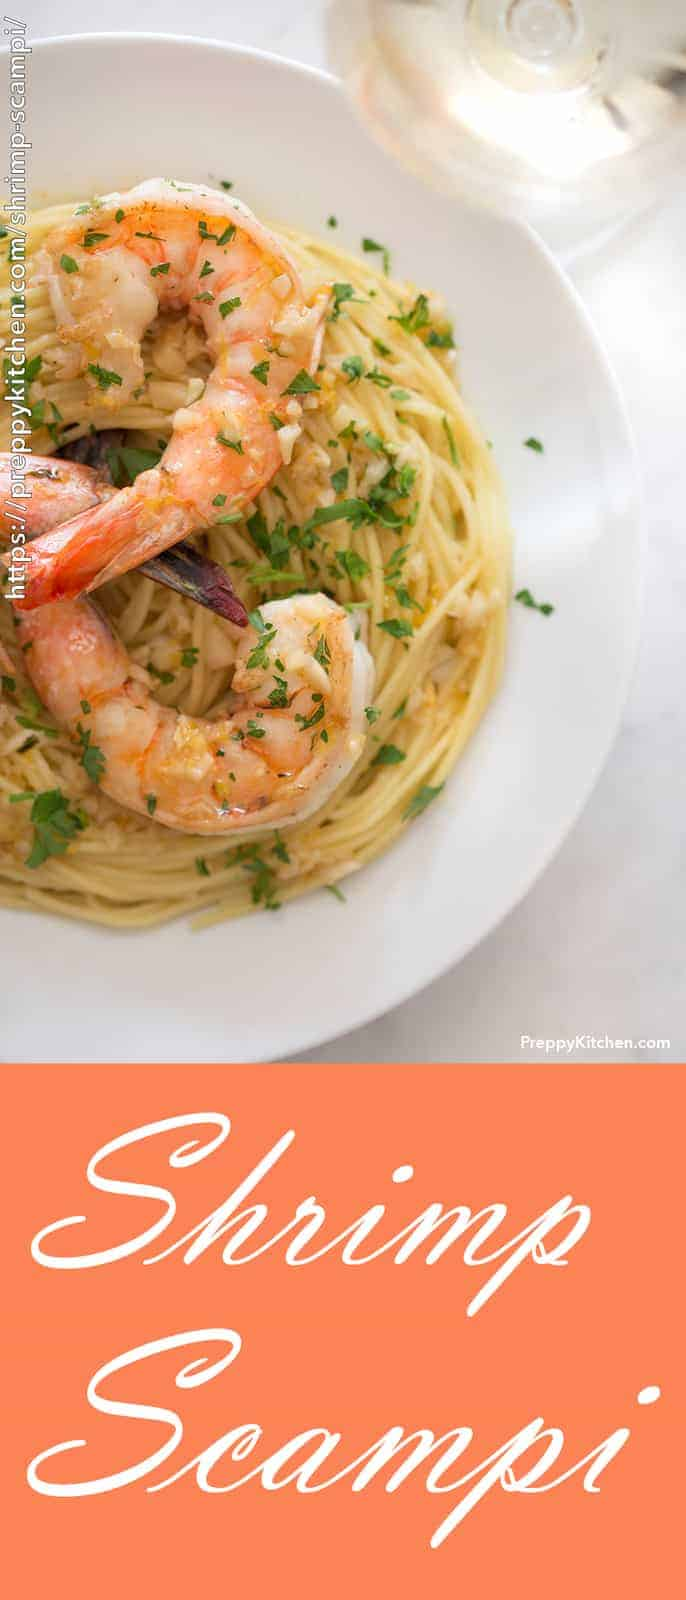 This easy and ultra-satisfying twenty minute meal is packed with lemony, garlic goodness! Buttery pasta topped and delicious sautéed shrimp make for a perfect pair.